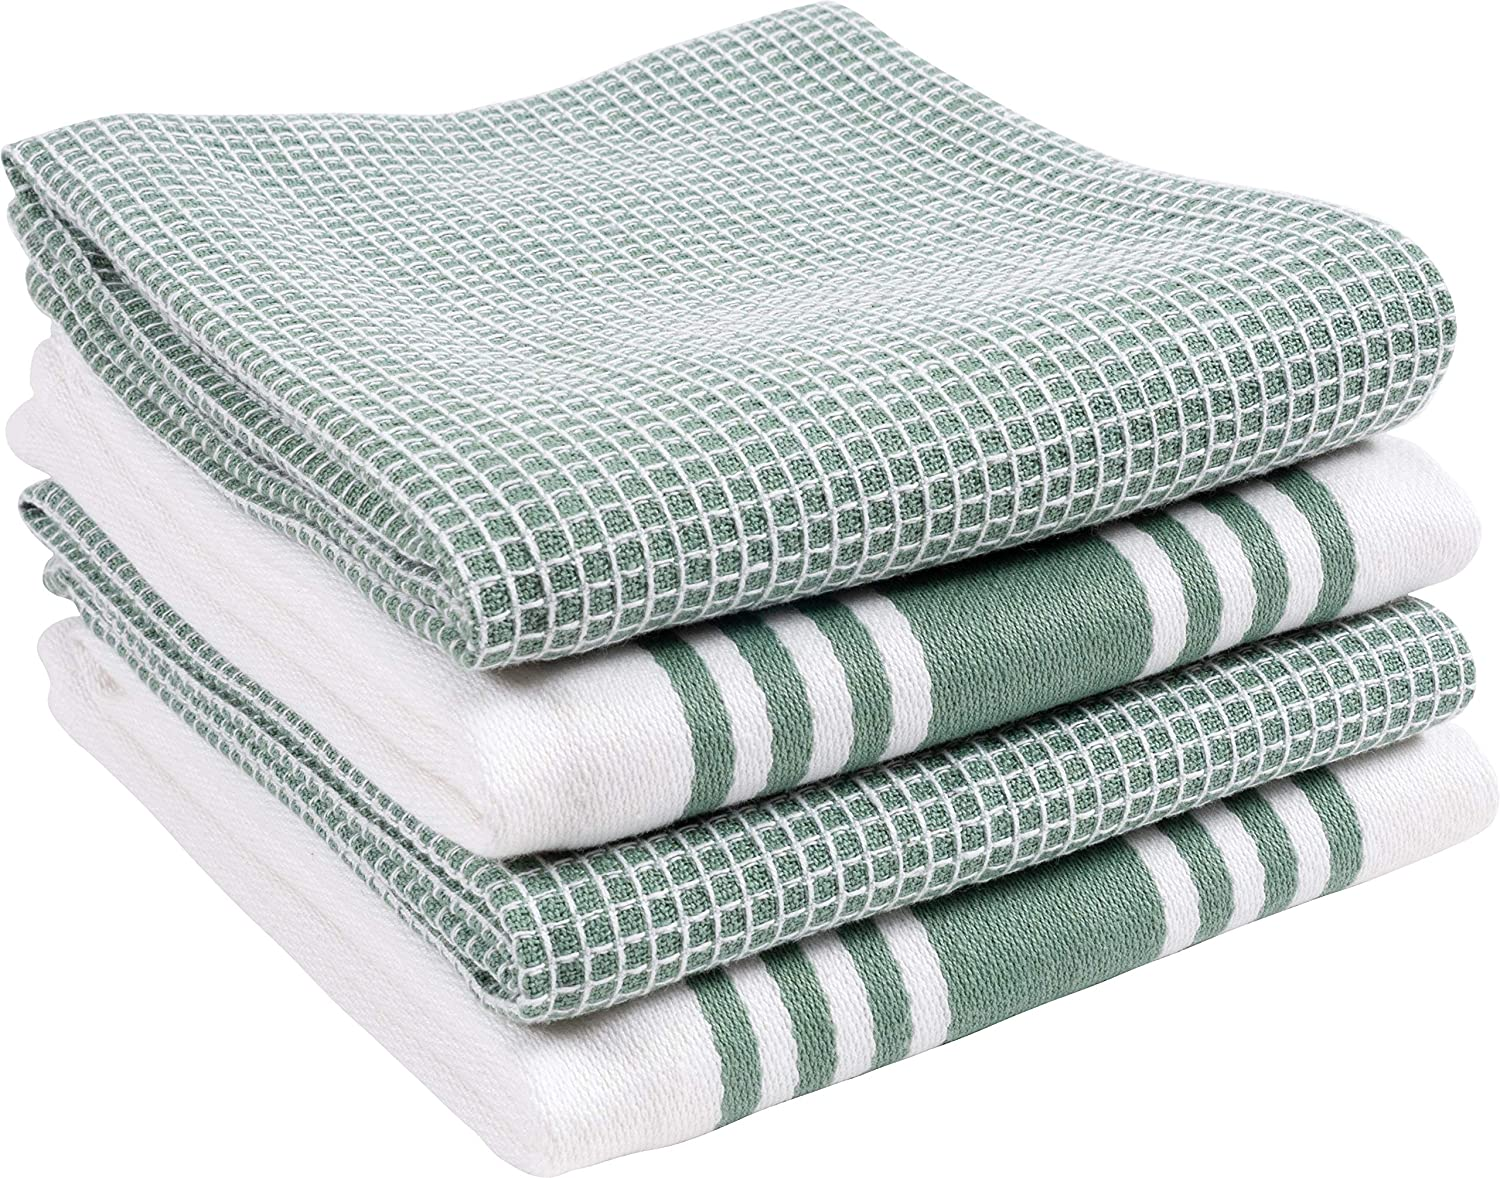 KAF Home Set of 4 Centerband and Waffle Flat Kitchen Towels | Set of 4 18 x 28 Inch Absorbent, Durable, Soft, and Beautiful Kitchen Towels | Perfect for Kitchen Messes and Drying Dishes – Sage